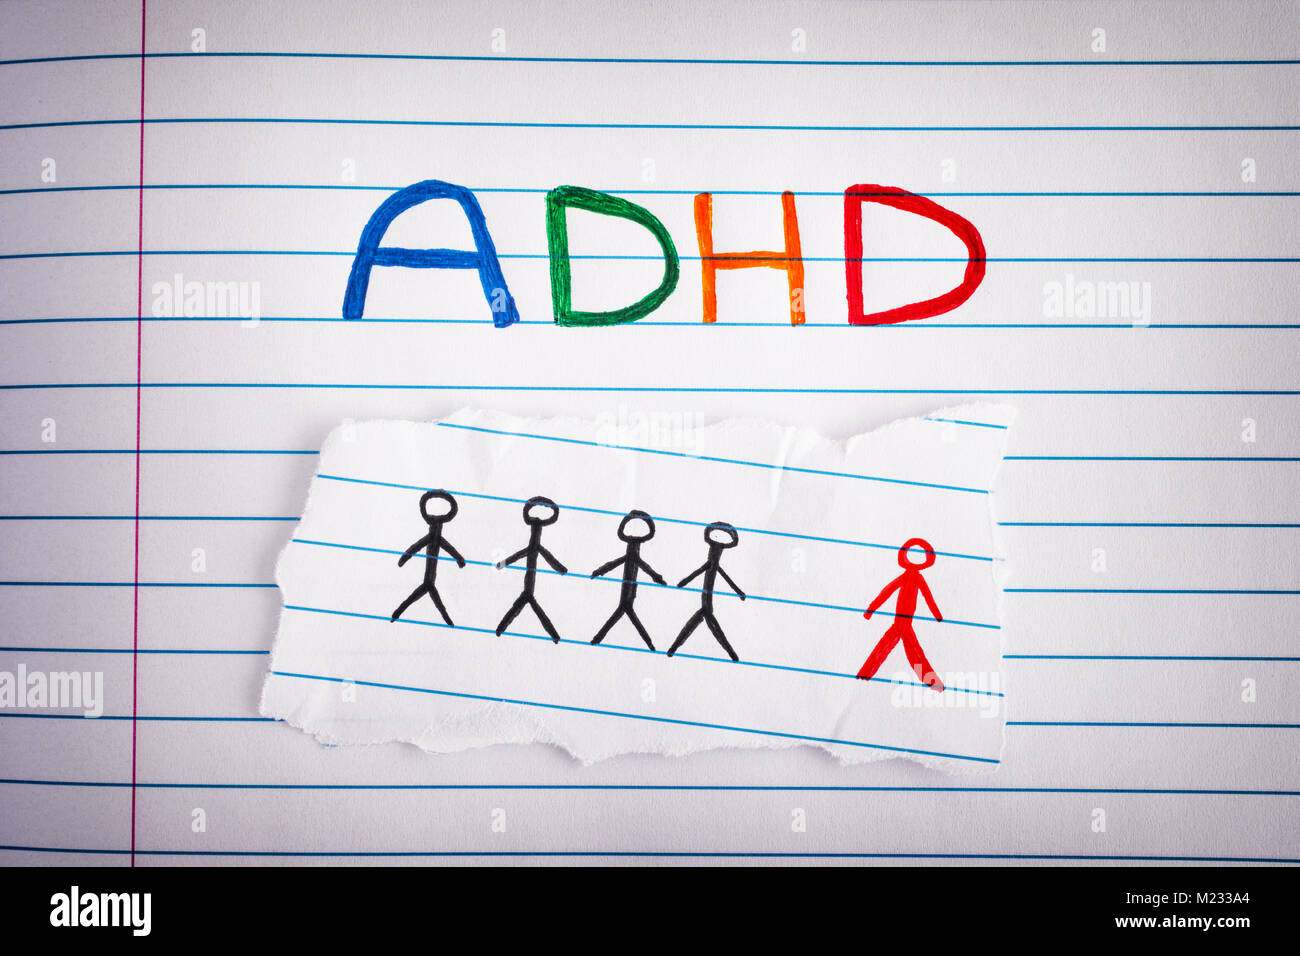 ADHD. Abbreviation ADHD on notebook sheet. Close up. ADHD is Attention deficit hyperactivity disorder. - Stock Image